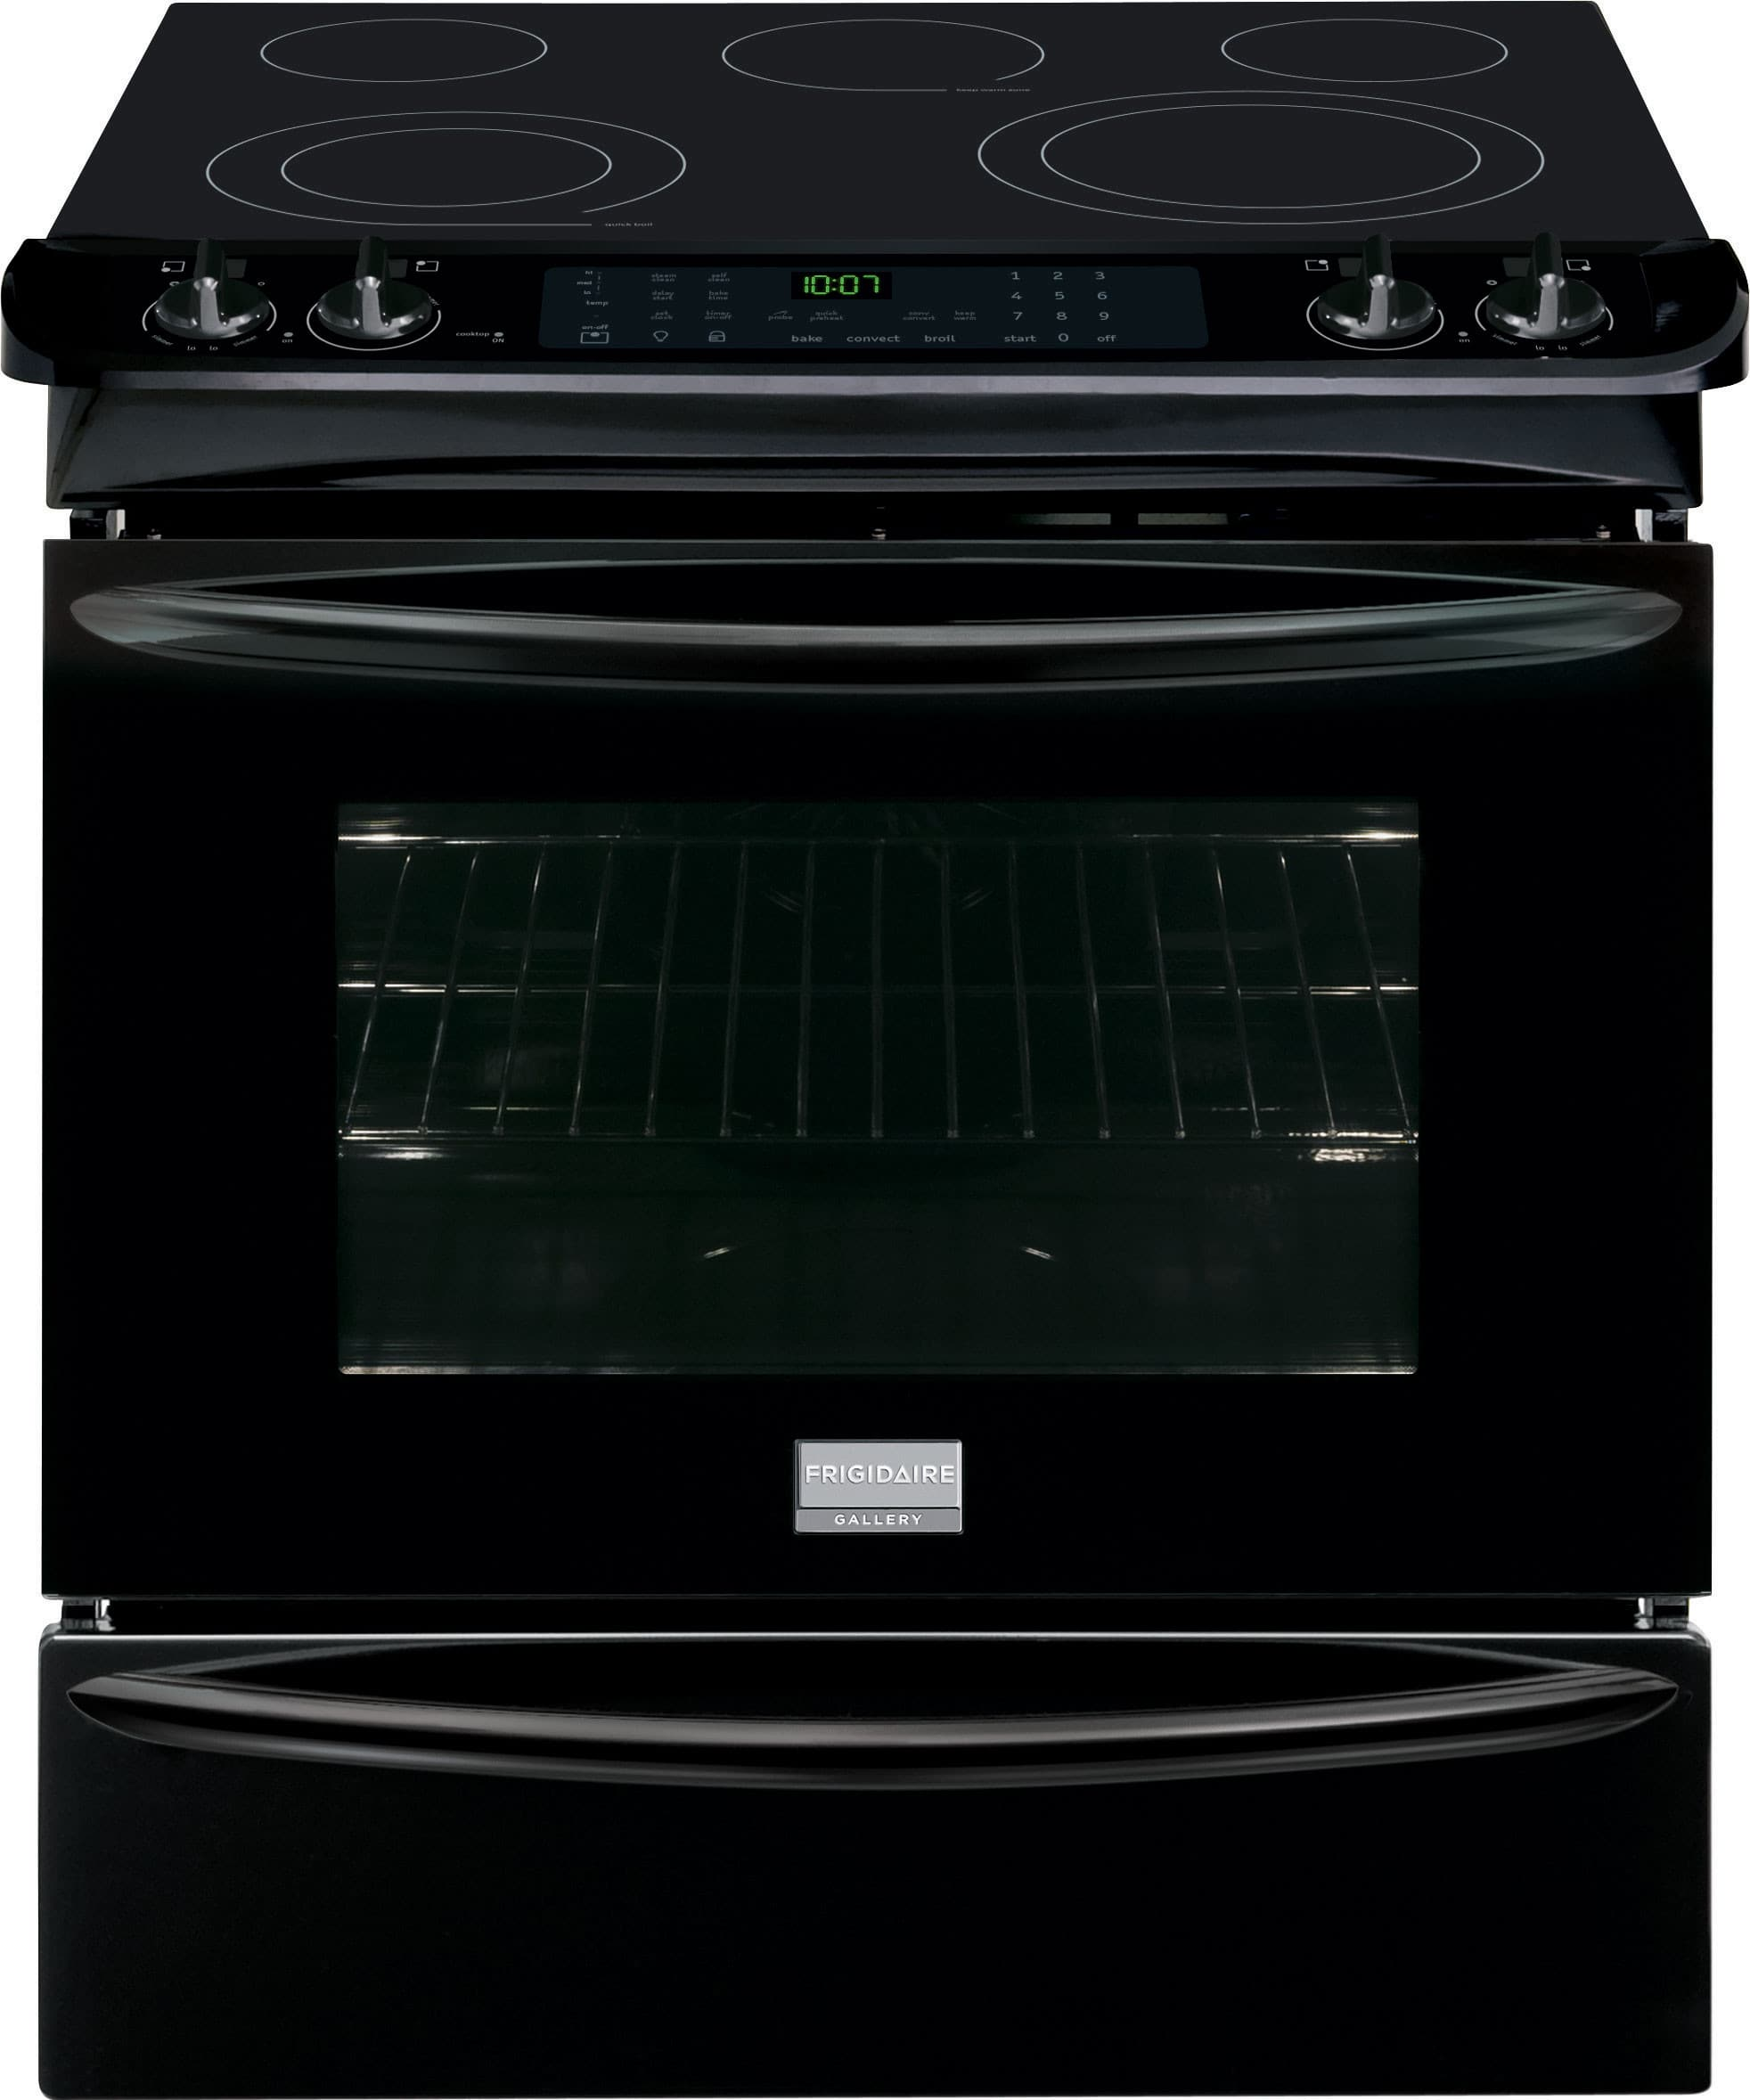 White apron gainesville fl - Frigidaire Fges3065pb 30 Inch Slide In Electric Range With True Convection Temperature Probe Steam Self Clean 5 Heating Elements Spacewise Elements